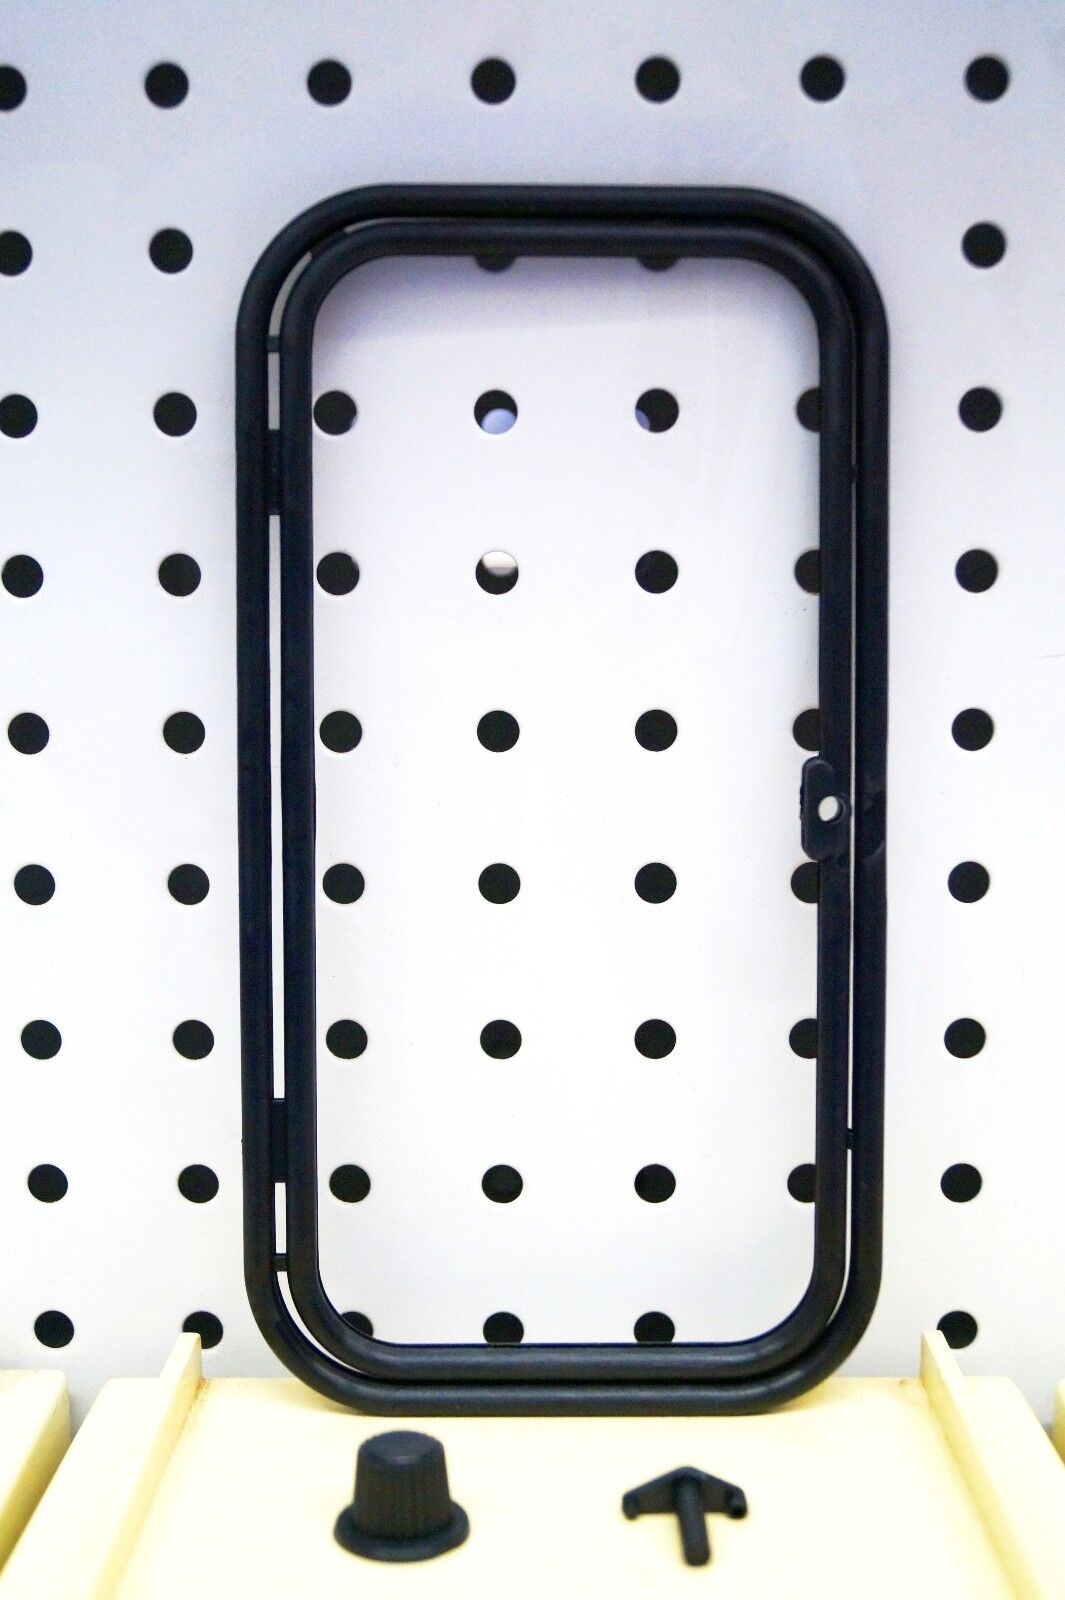 FLY SCREEN SPRING PIN FOR 25MM FRAME (2 ZINC PIECES